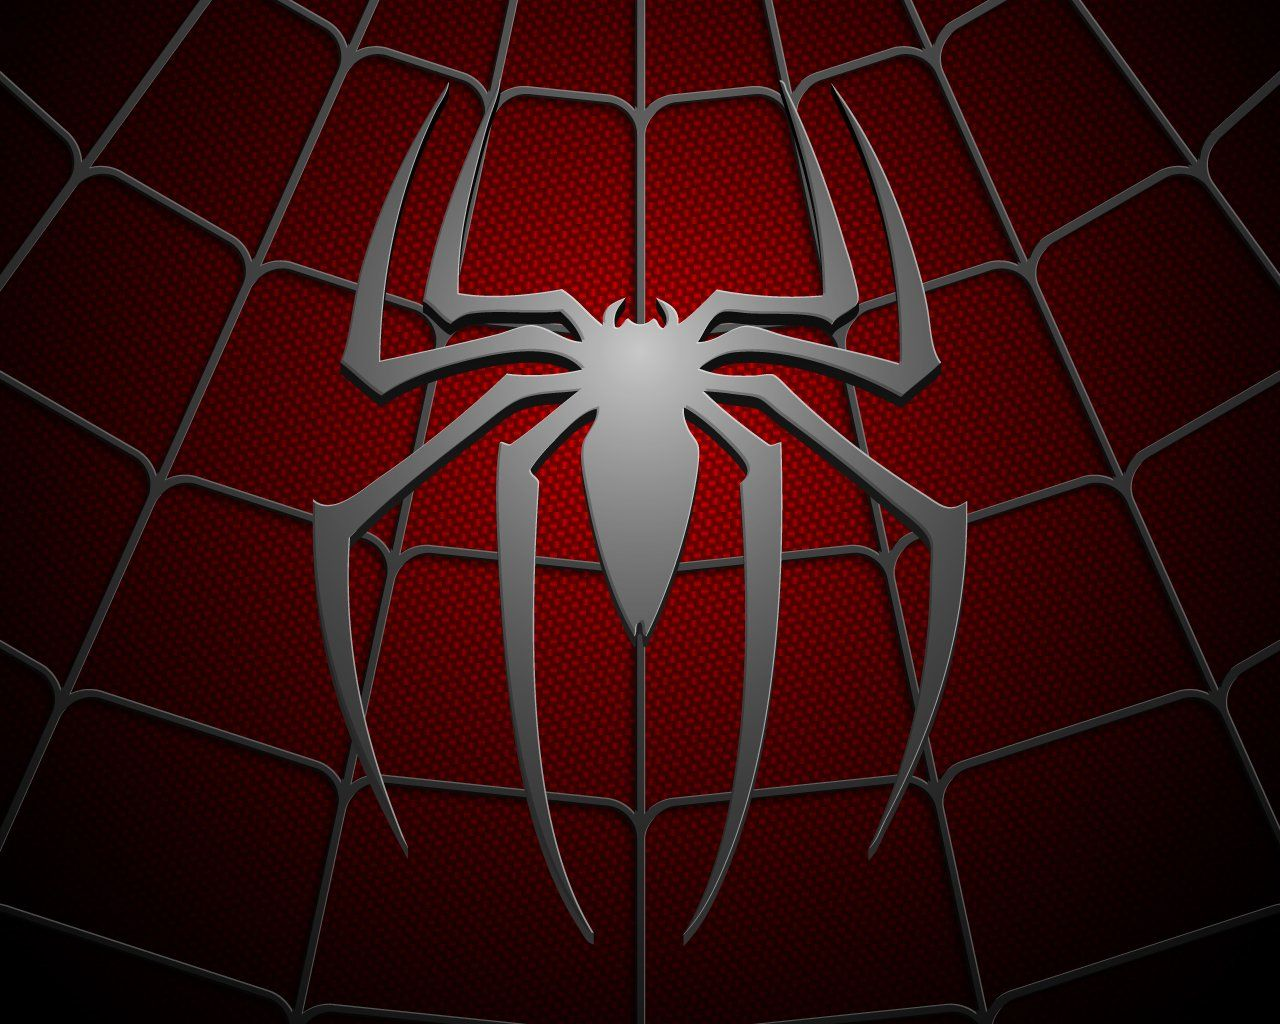 Hd wallpaper spiderman - Find This Pin And More On Hd Wallpapers By Receptynakazhdyjden